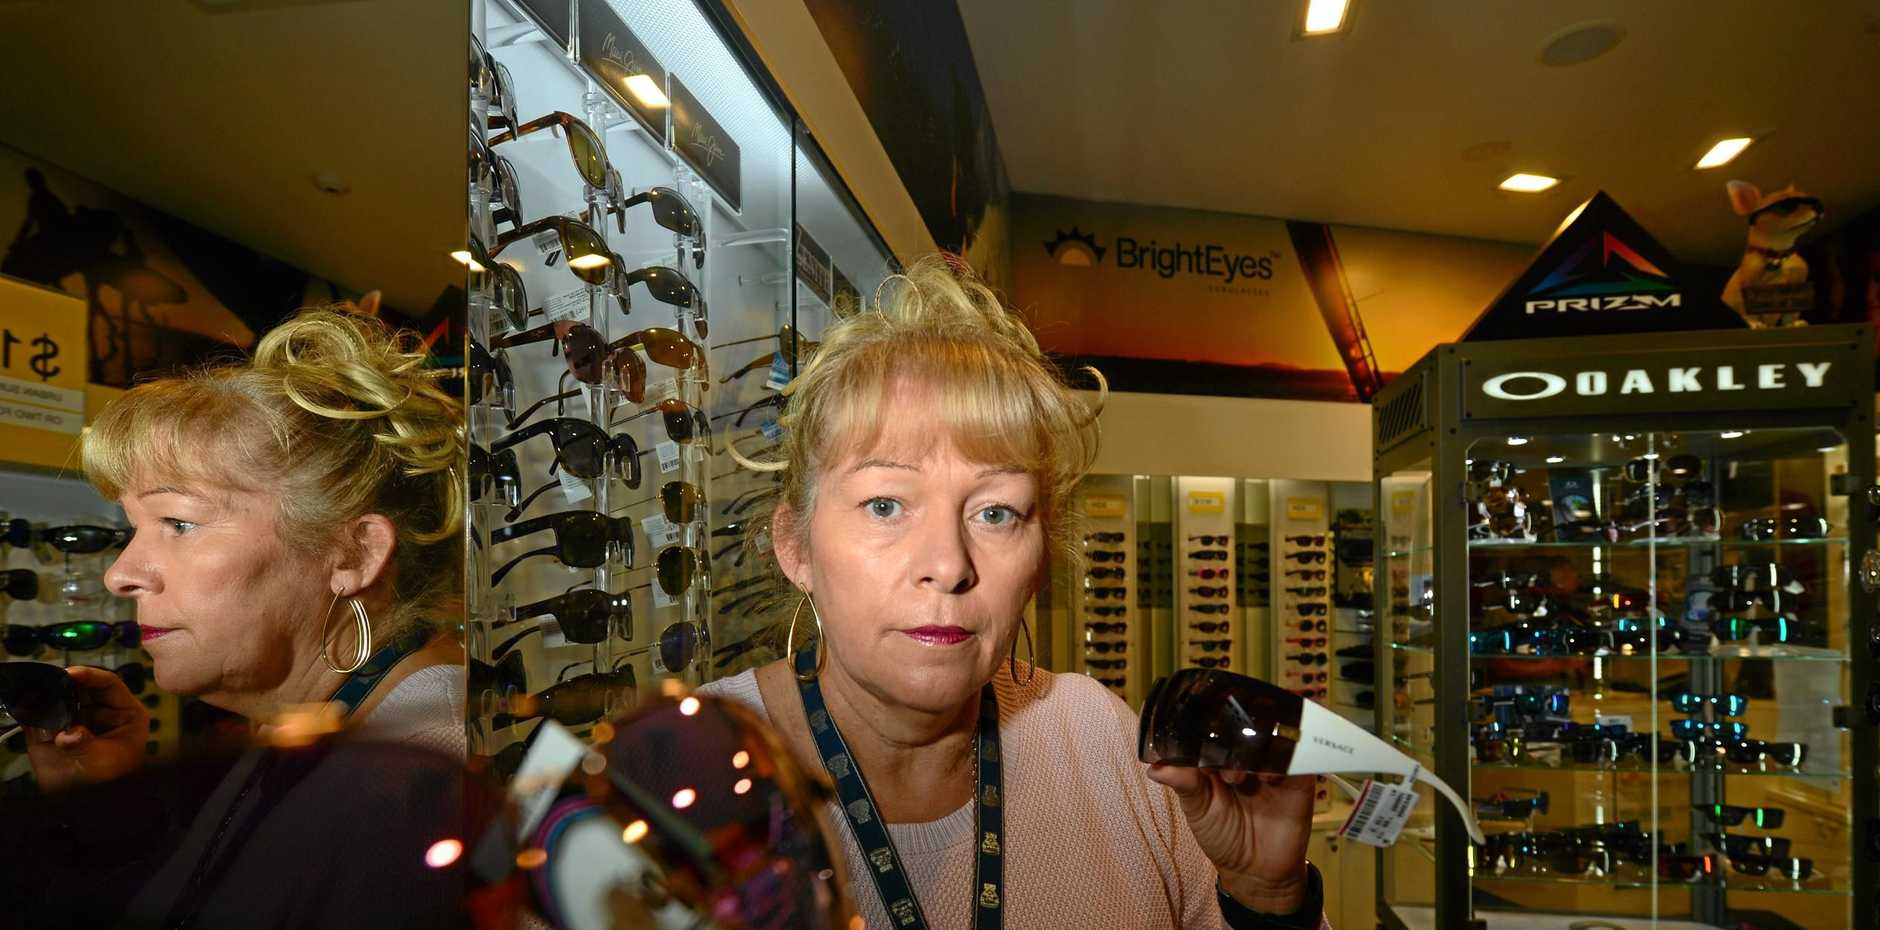 ANGRY: Georgia Dixon of Bright Eyes in Caloundra was assaulted by a juvenile as he tried to flee the sunglasses store with stolen merchandise.